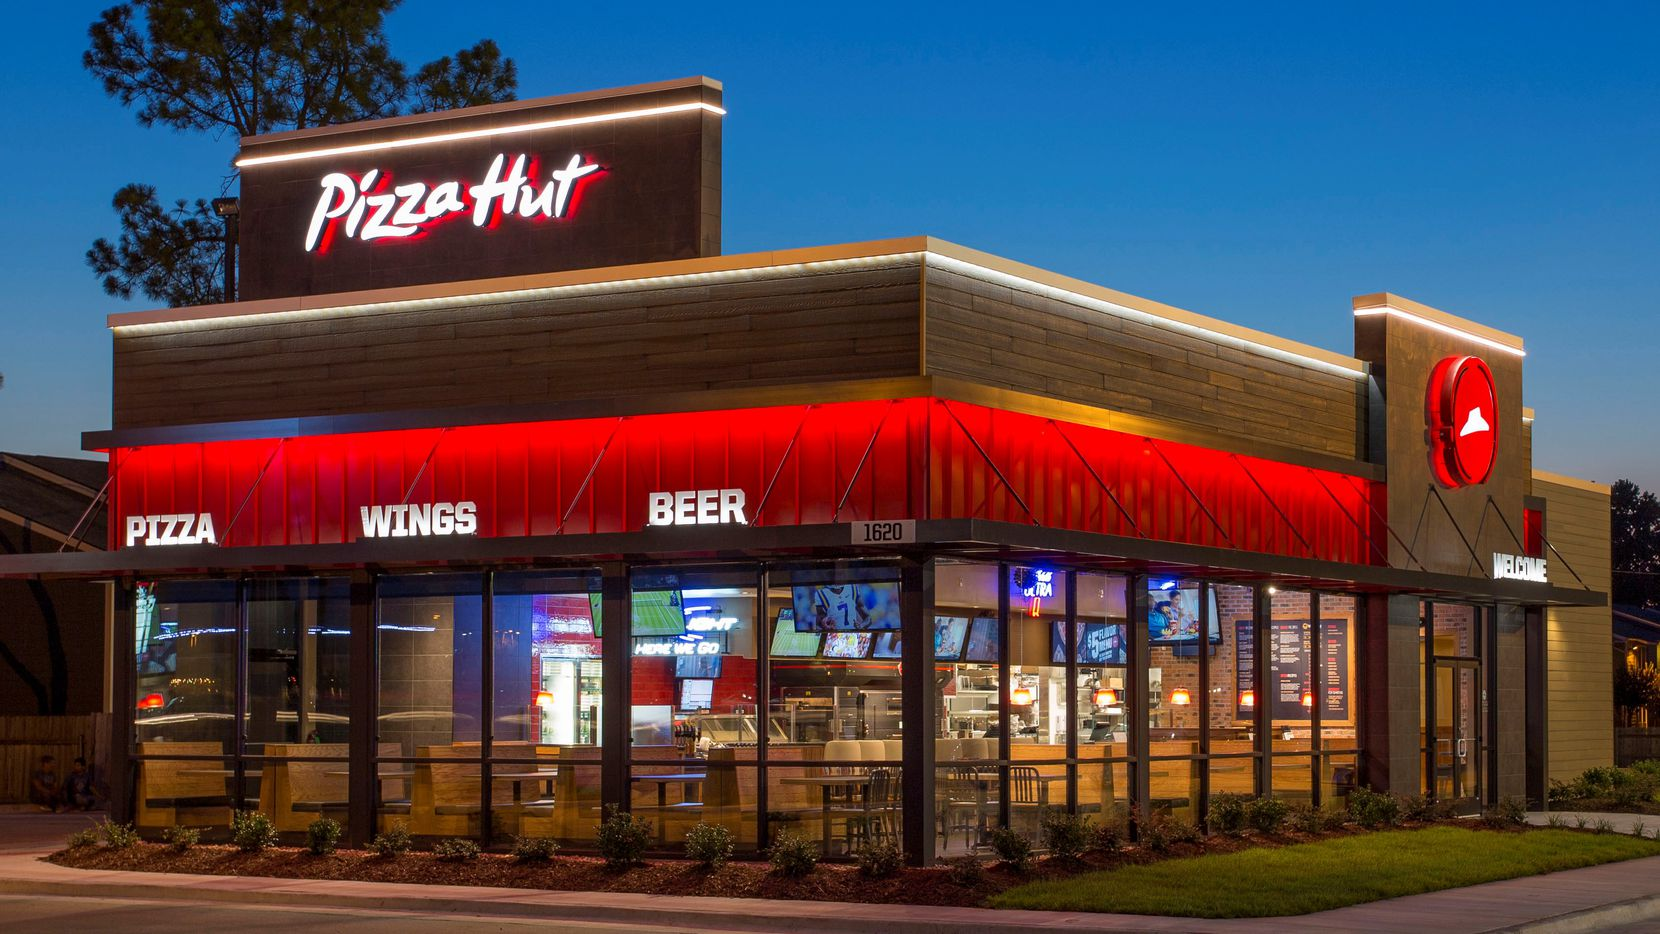 Plano-based Pizza Hut and its franchise operators are struggling with rising labor and food costs, and increasing customer demand for delivered food.